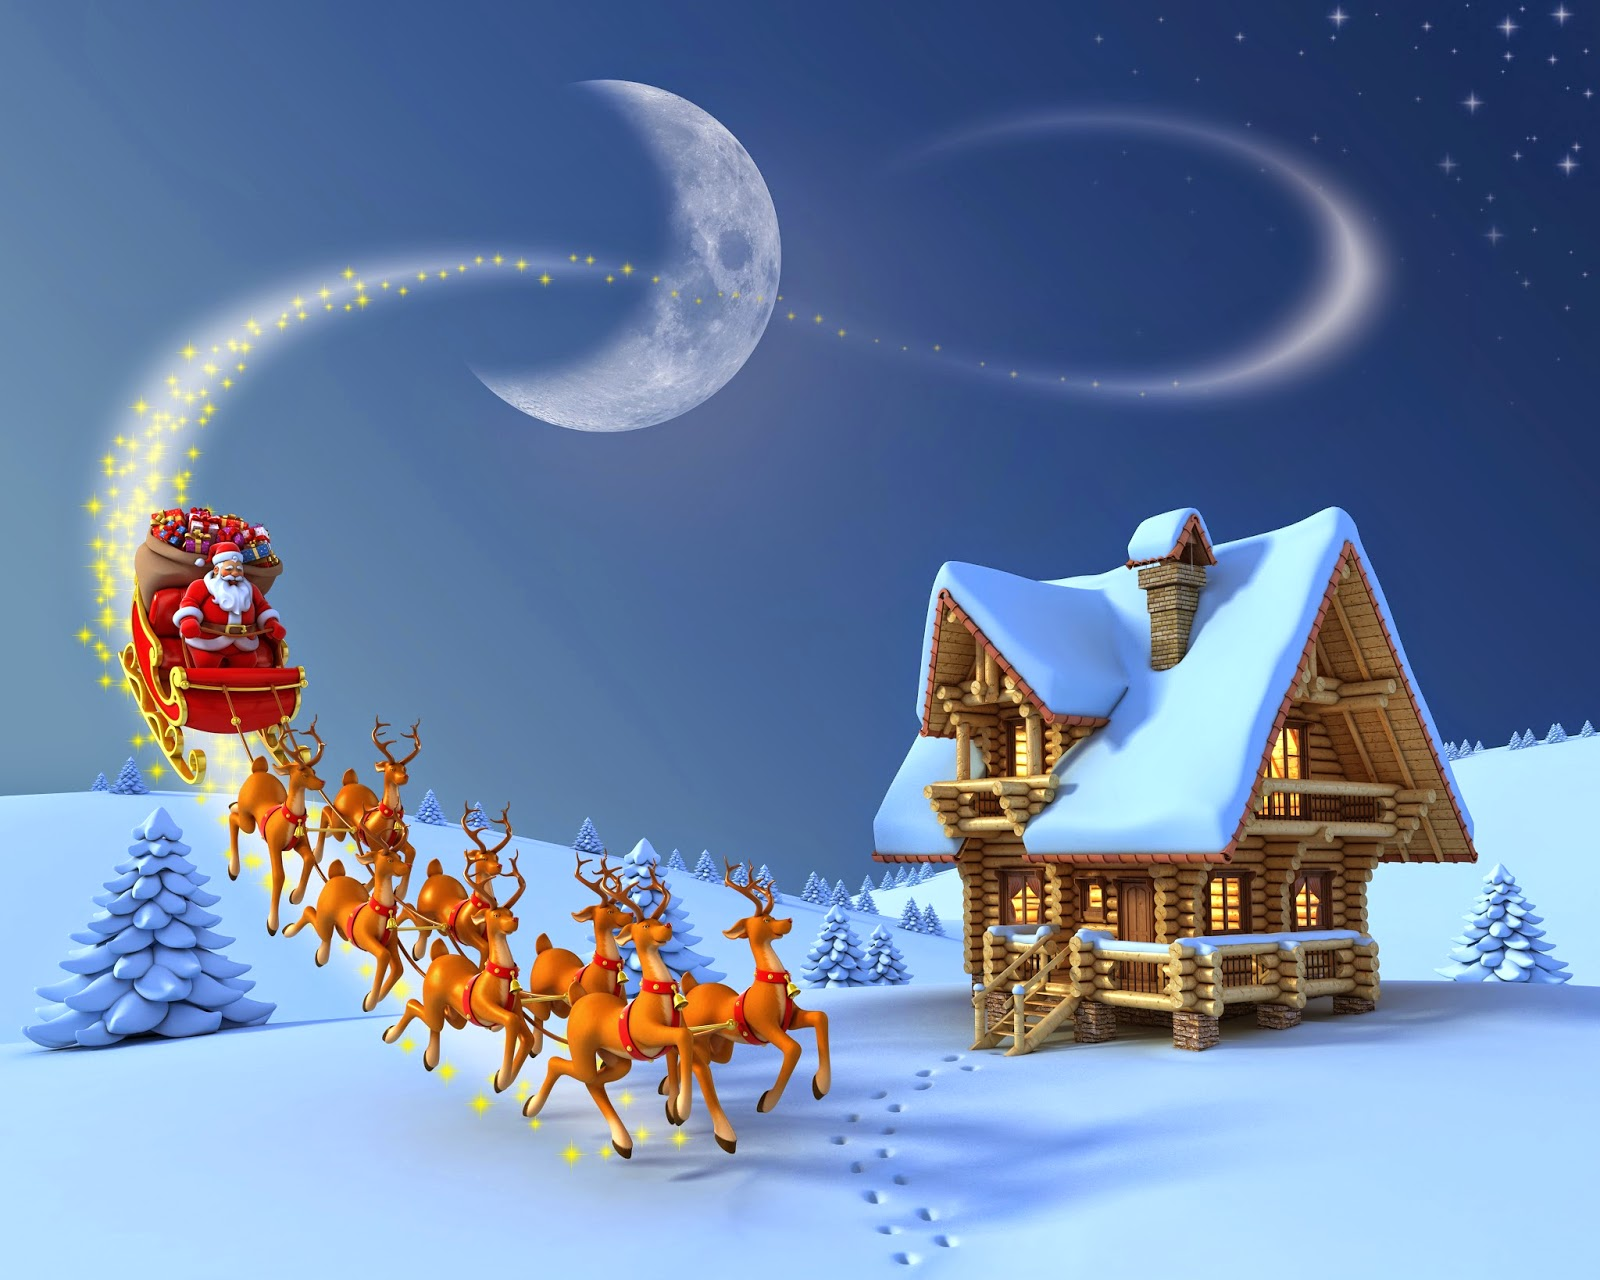 Santa-coming-home-riding-his-sleigh-cartoon-animation-3d-image-wallpaper-for-kids-children-6496x5197.jpg